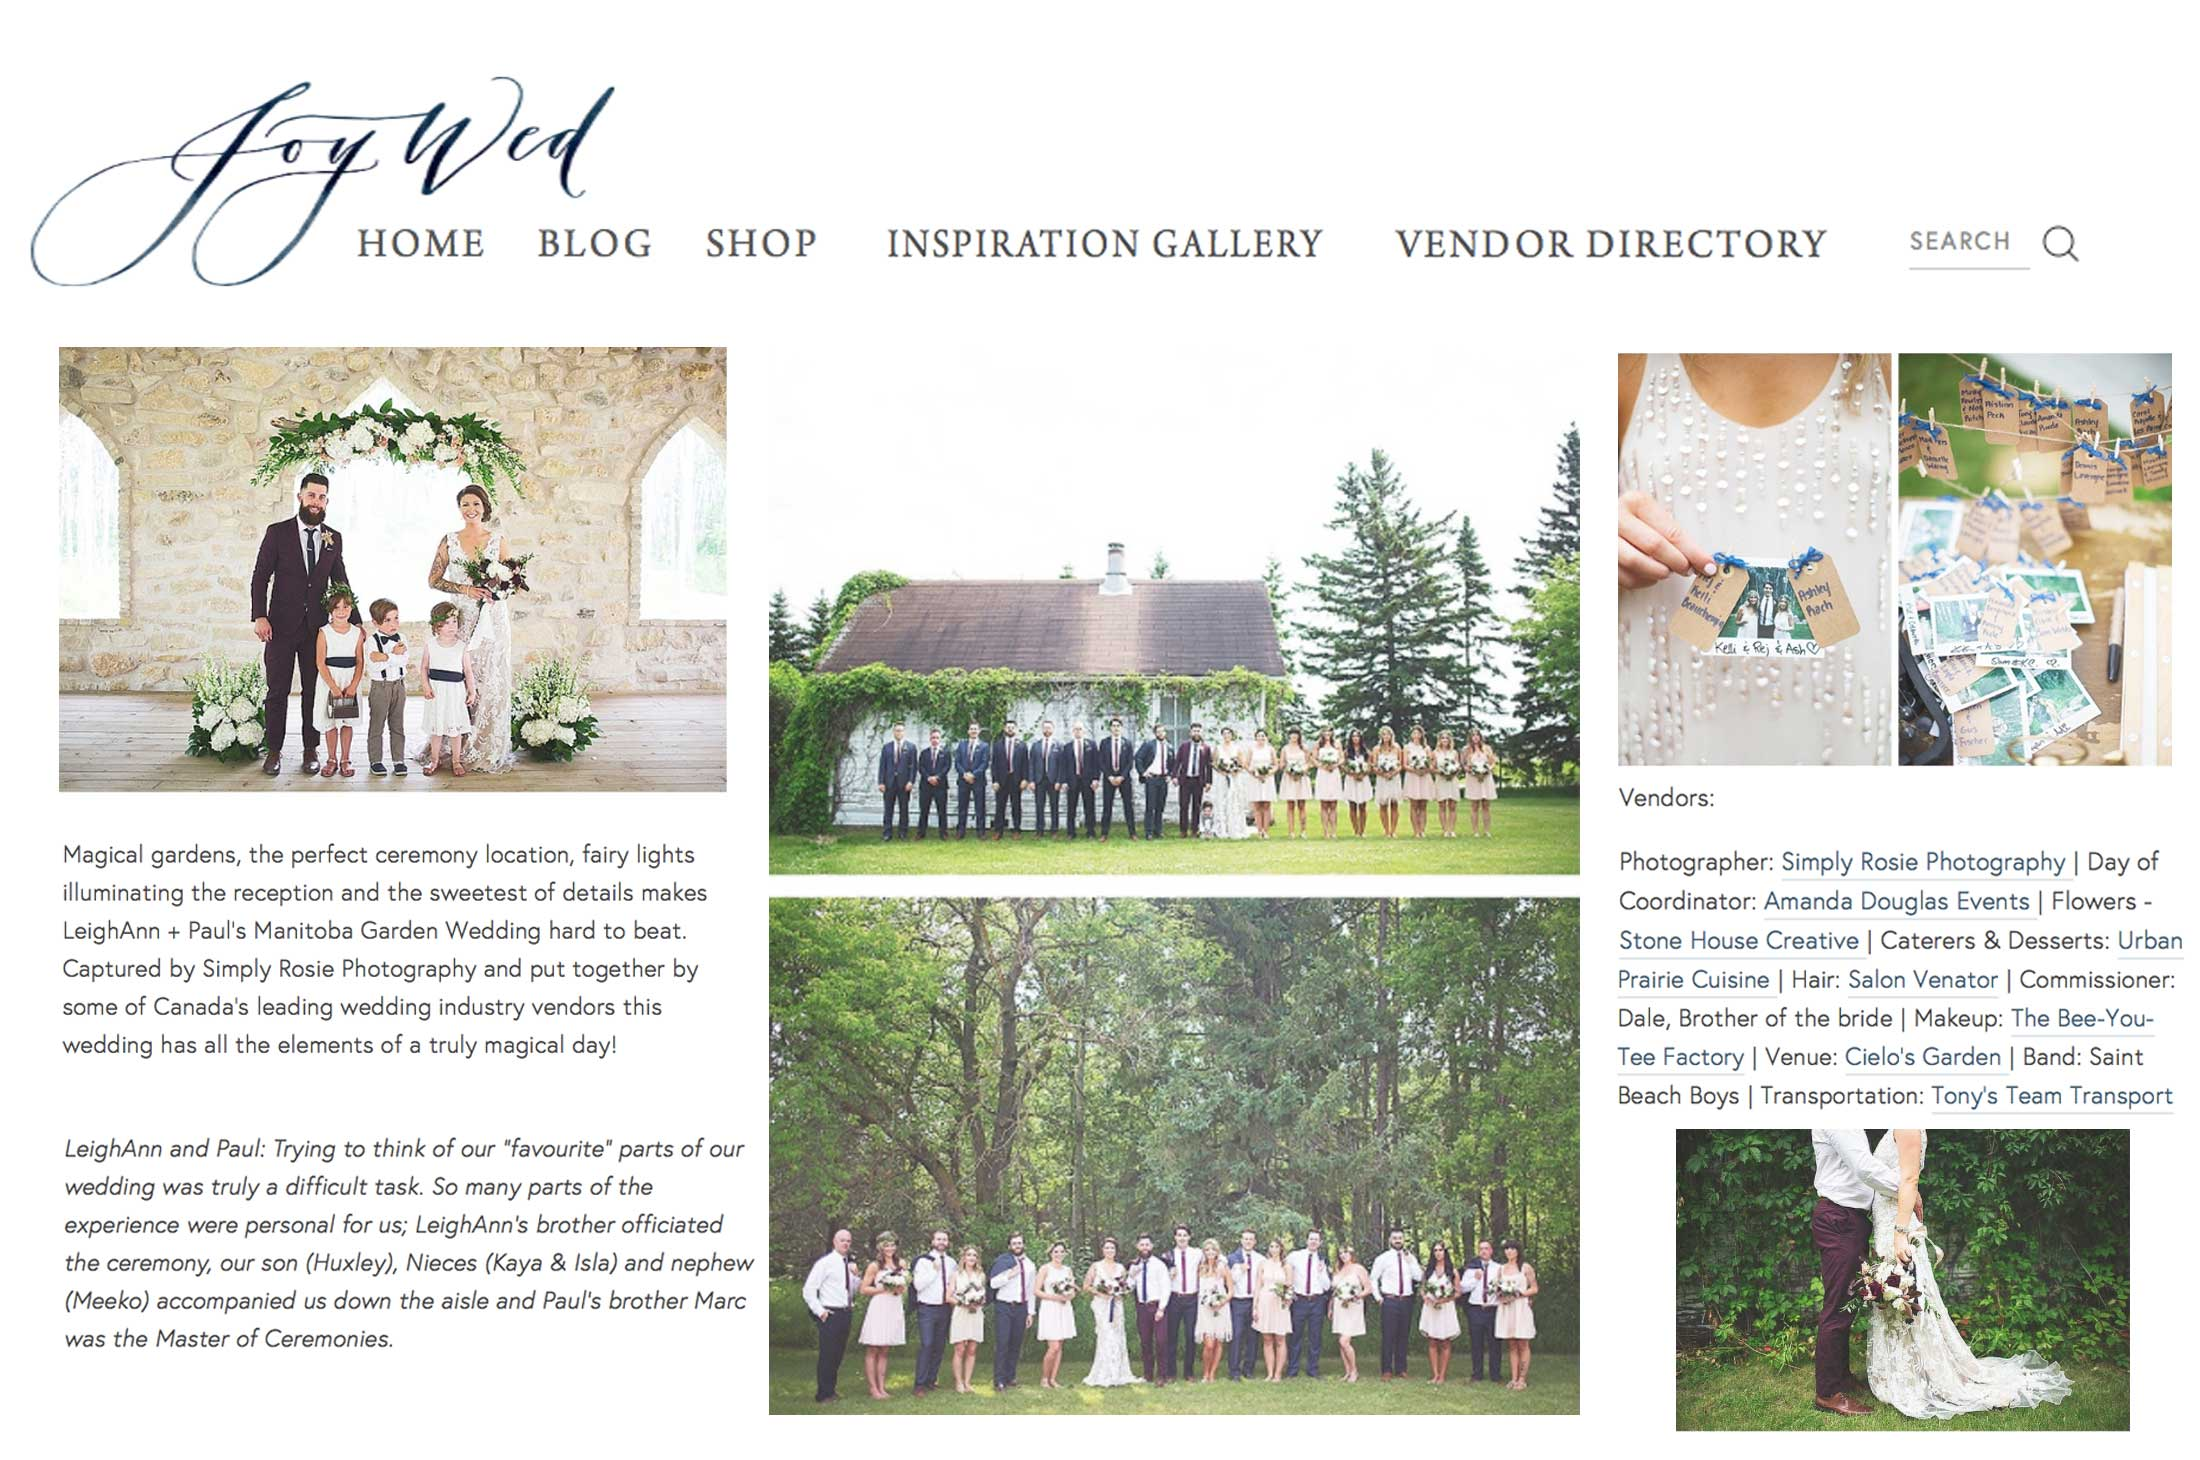 Winnipeg Wedding Planner and Inspiration Feature: Joy Wed